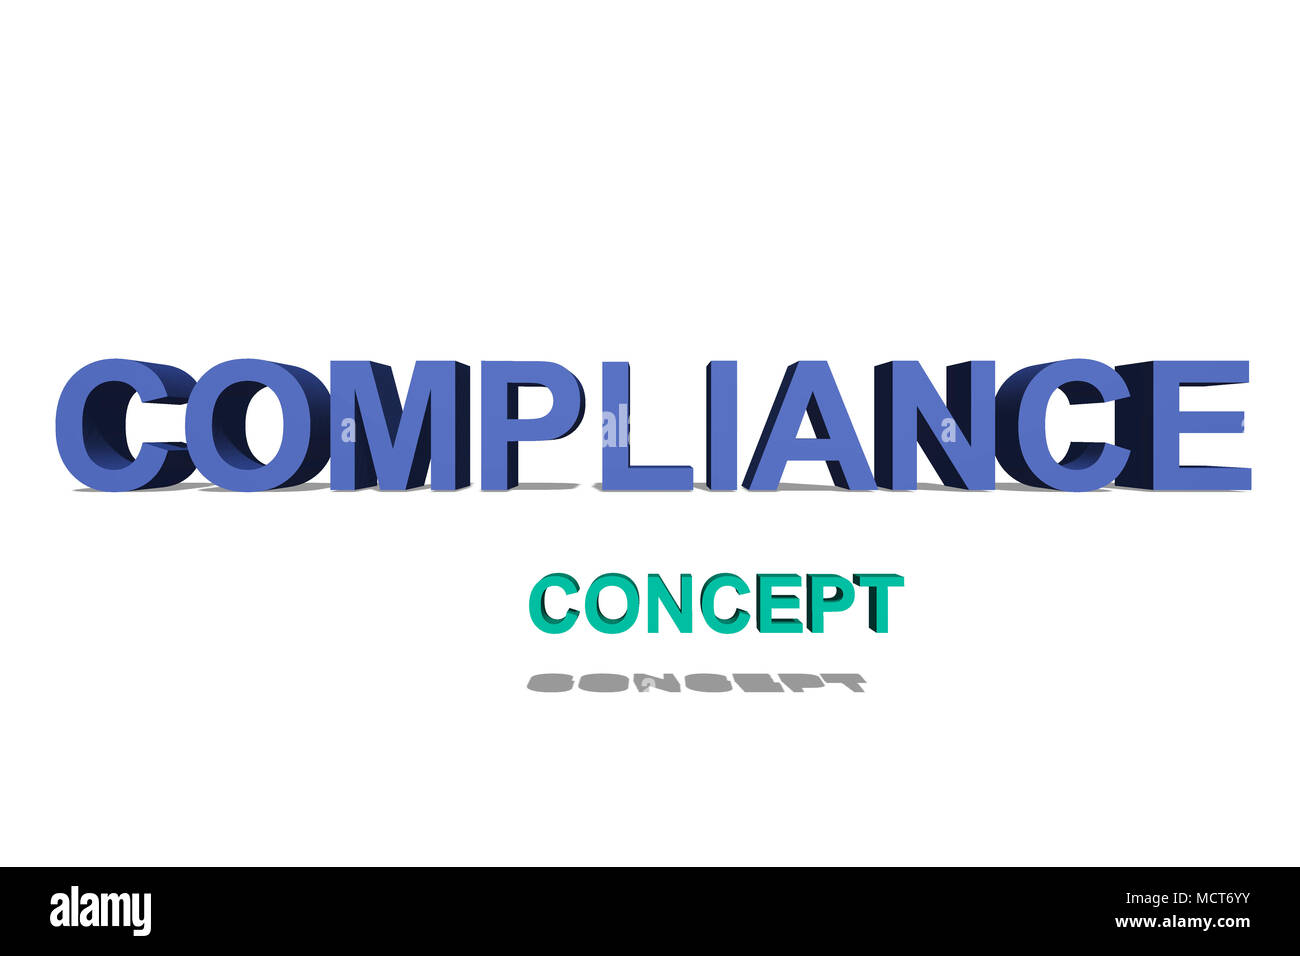 Compliance as 3D text on a white page for background - Stock Image